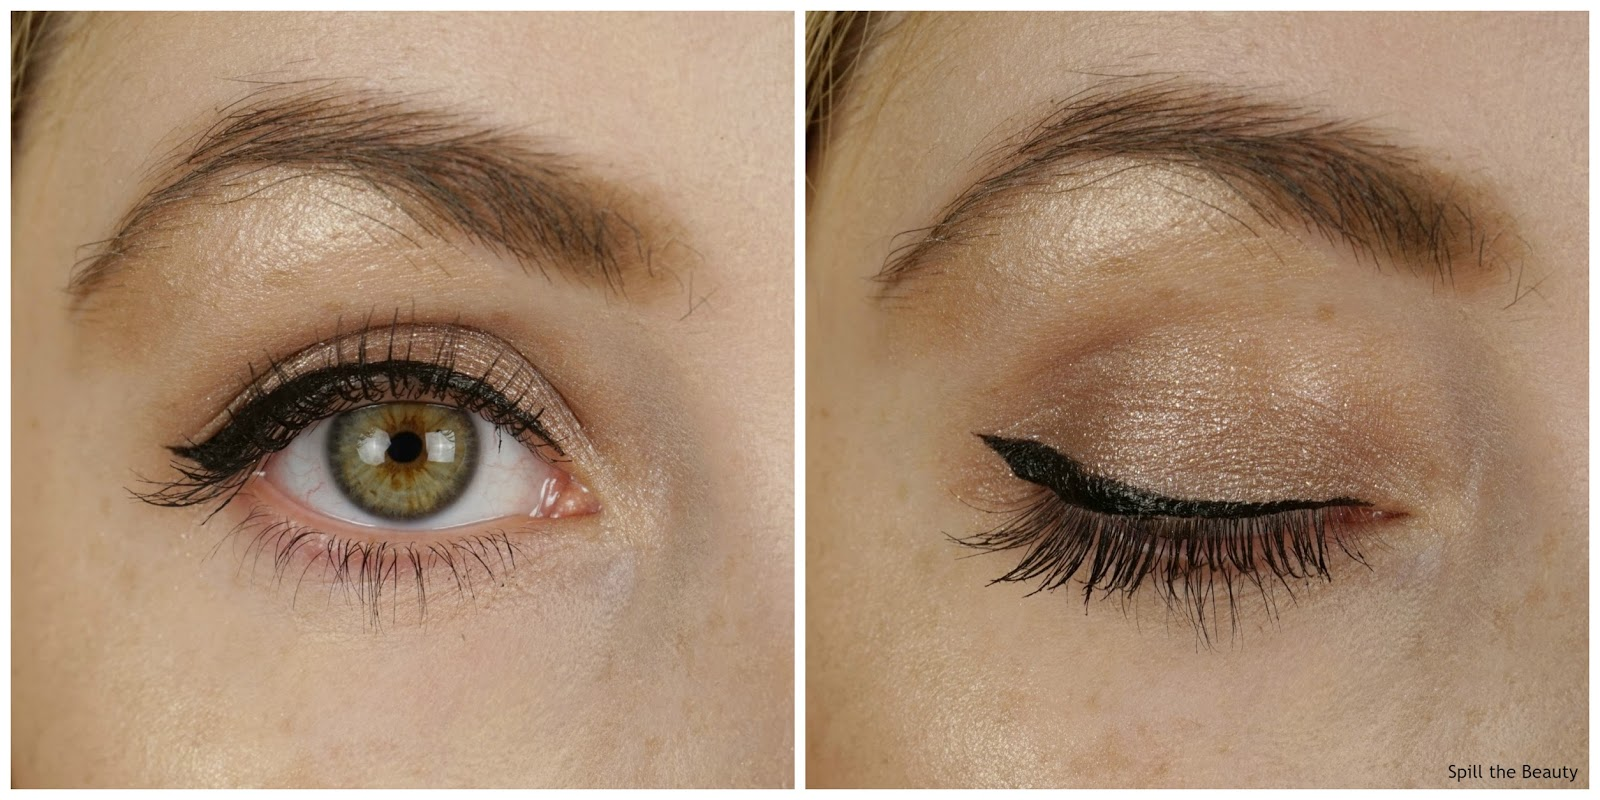 dior holiday makeup 2016 4.5 review swatch fusion mono infinity